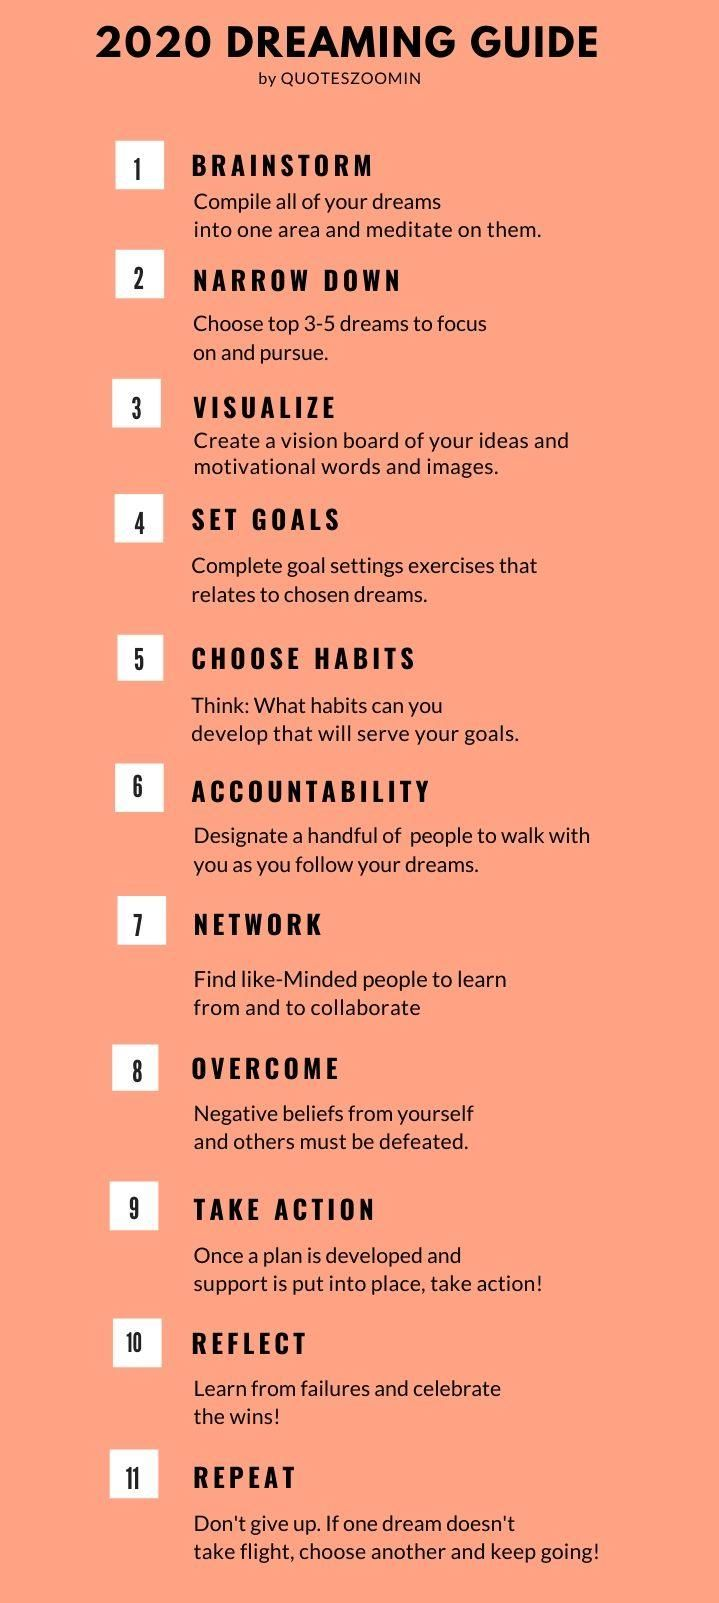 happy new year quotes dreaming guide goals resolutions